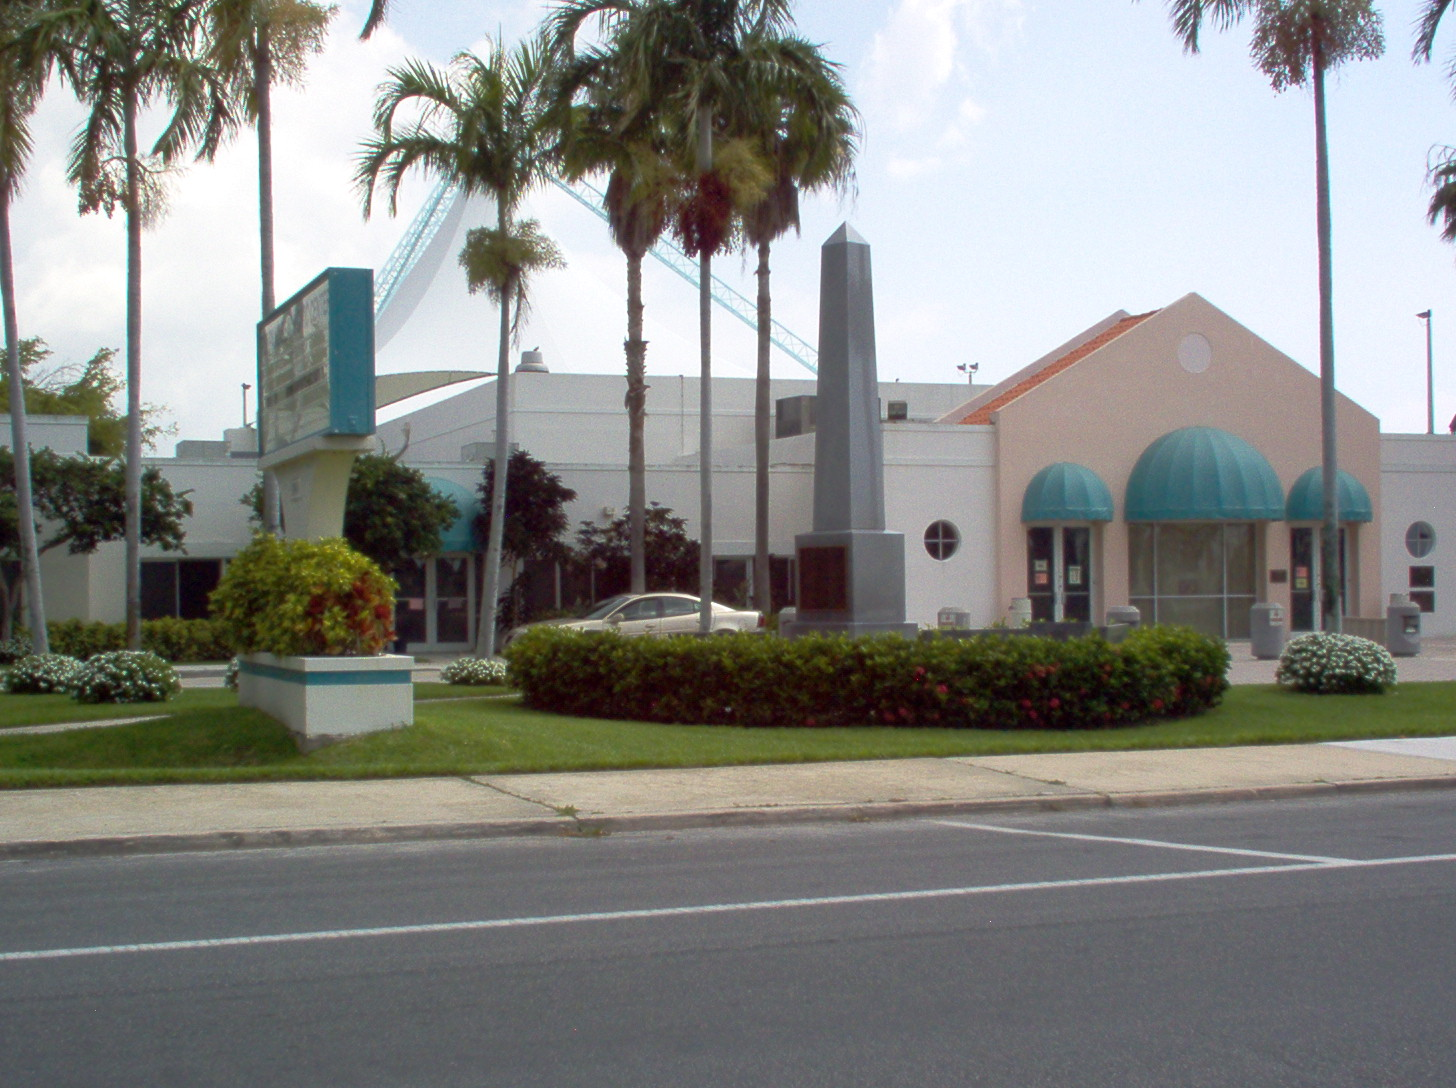 Pompano Beach Civic Center